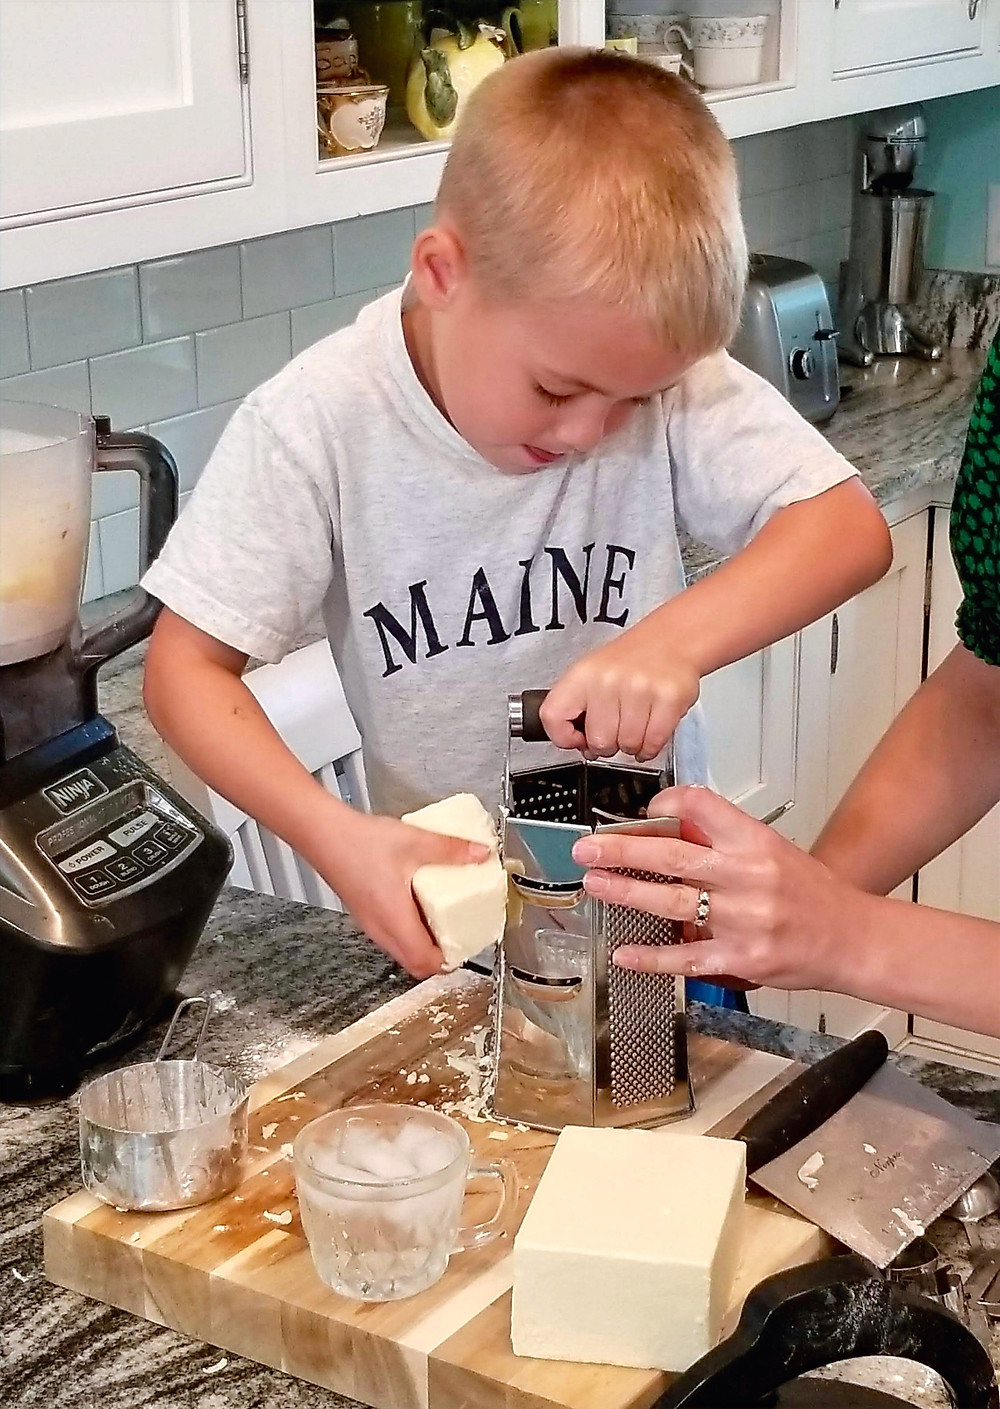 Young child (Thomas) grating cheese for goldfish crackers